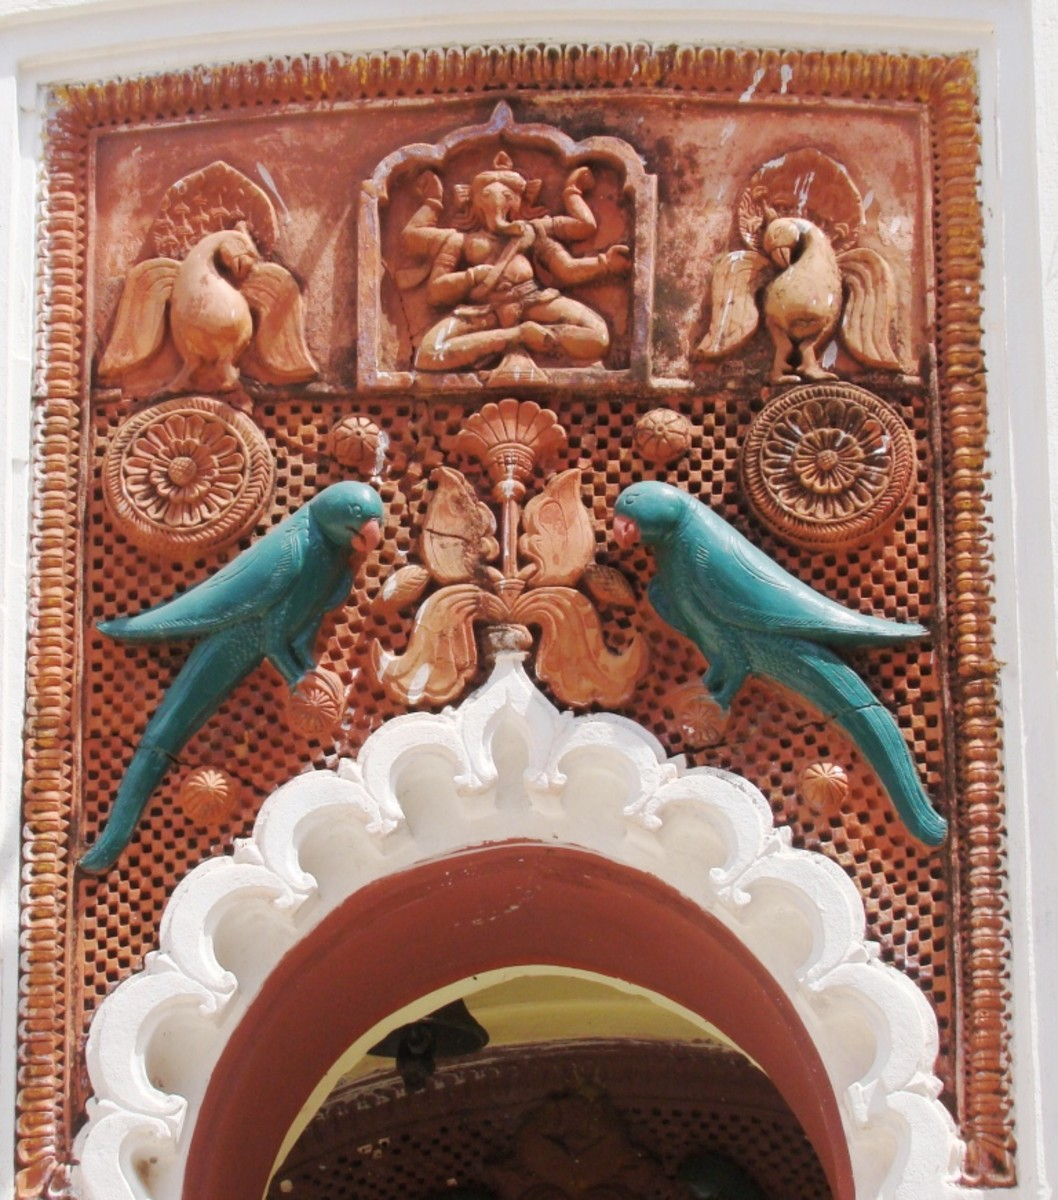 Terracotta panel. The green color on the parrots is a later addition.